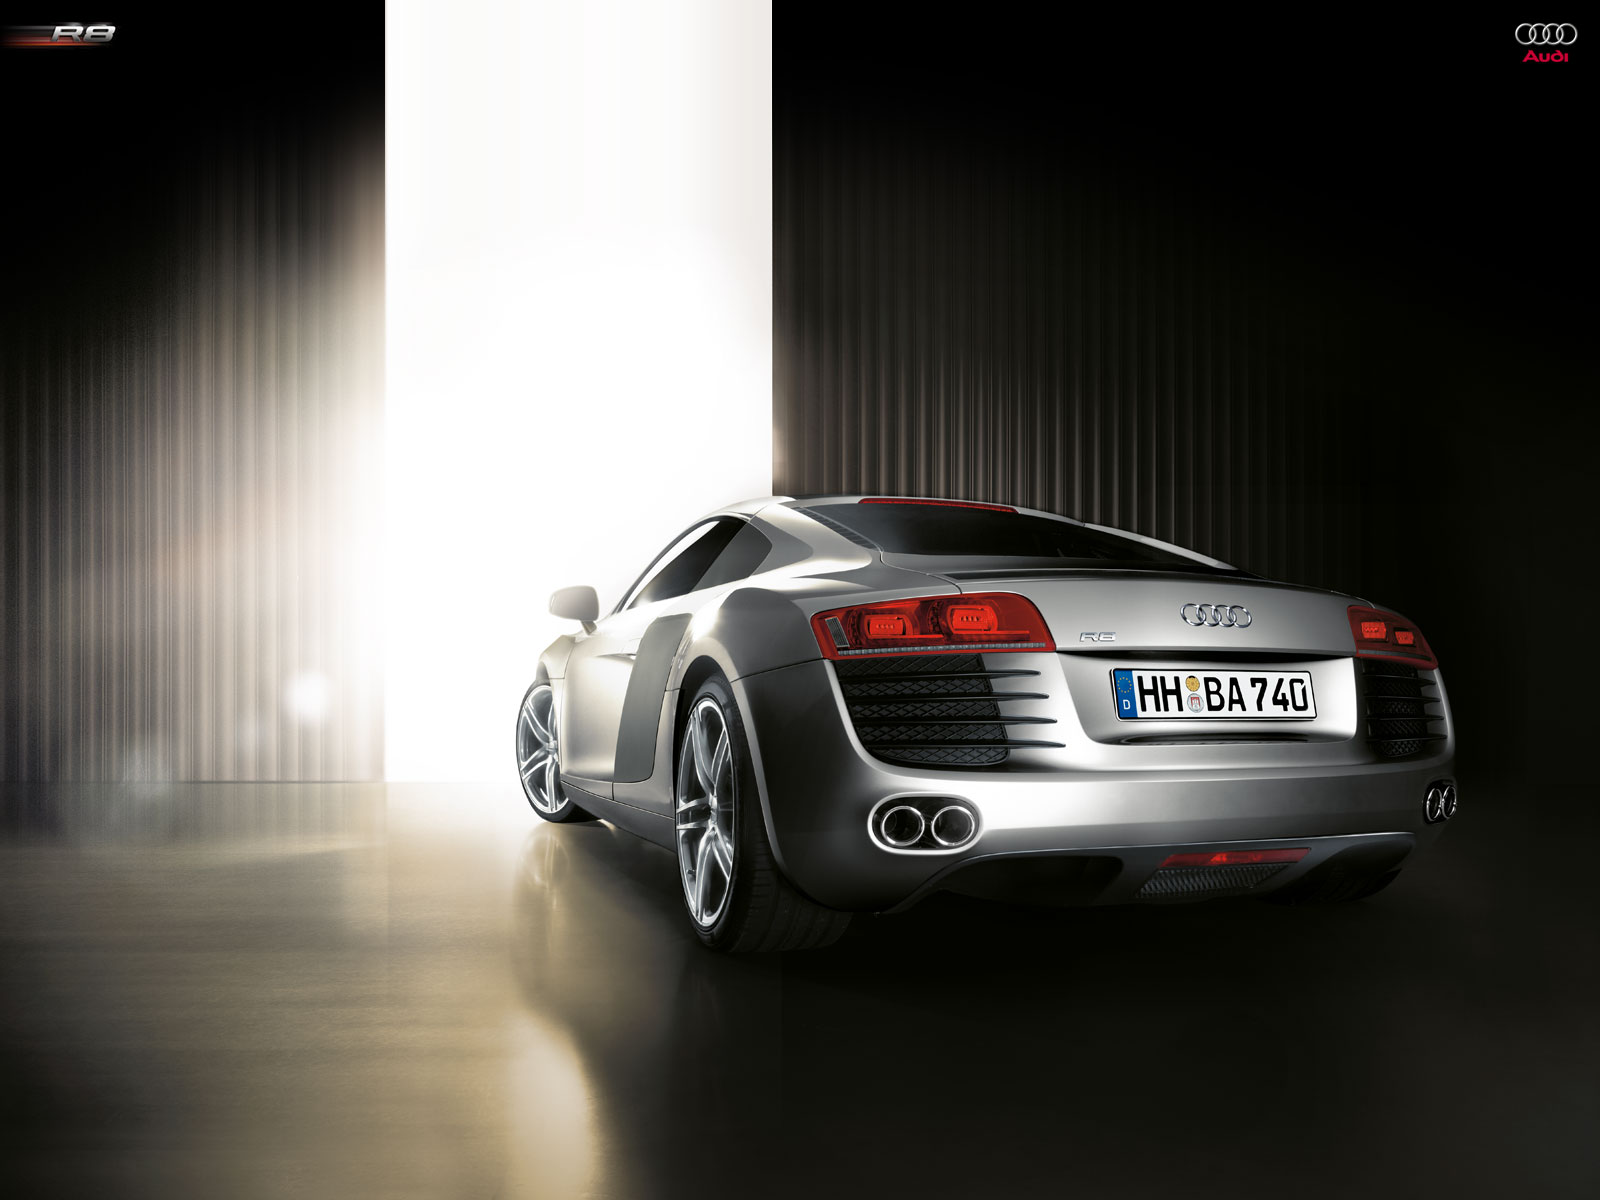 coolest hd wallpapers audi - photo #25